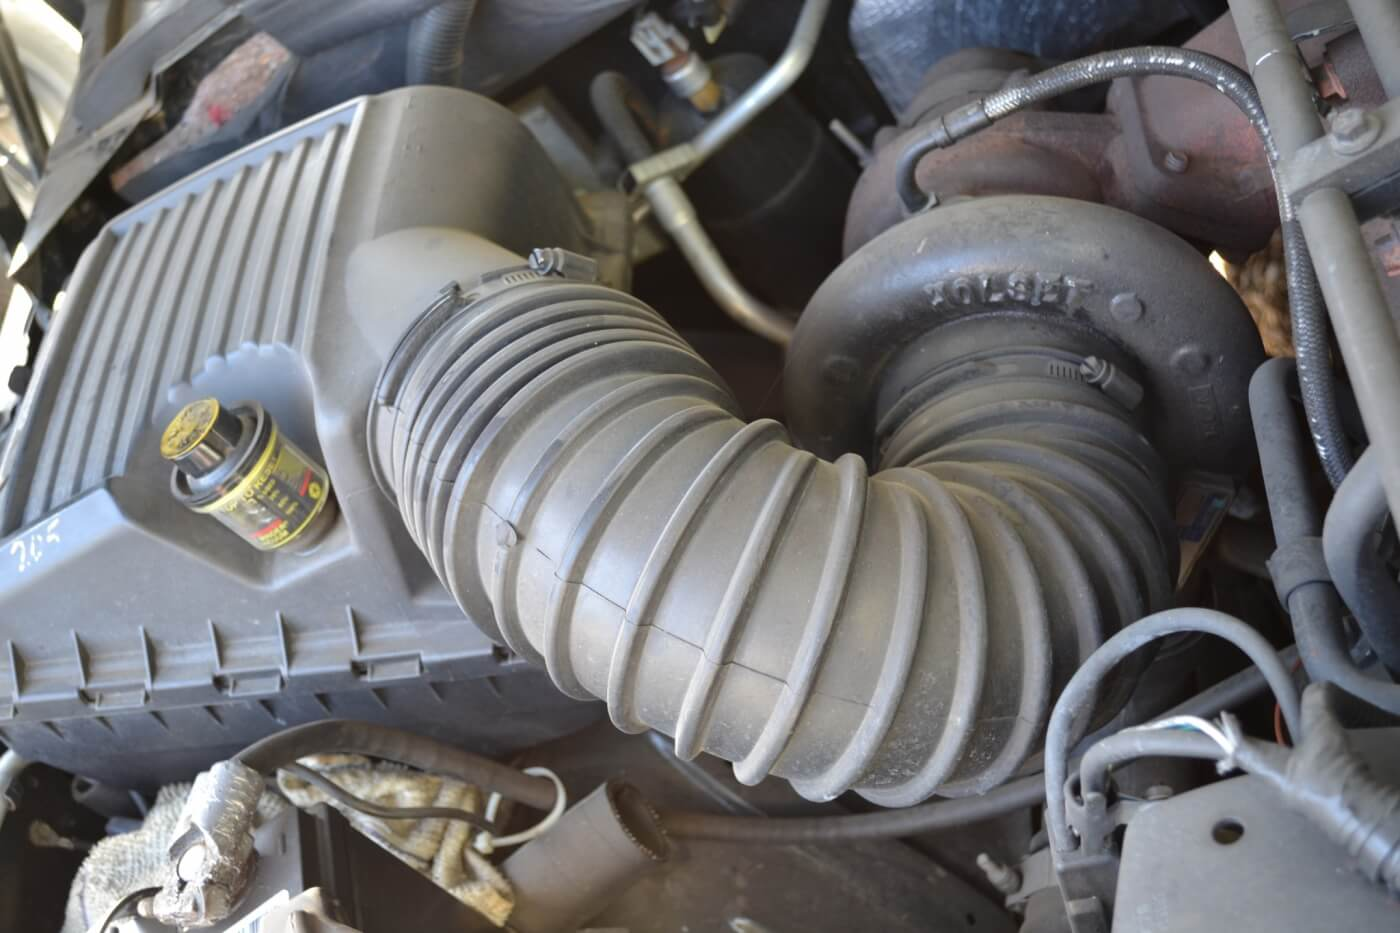 1. Our factory airbox, although functional, wasn't much to look at and had seen plenty of miles. The previous owner had used the space between the intake and battery box for storage, and below the white rag in the picture, we found a pair of vice grips, three more rags, and a spare coolant hose.